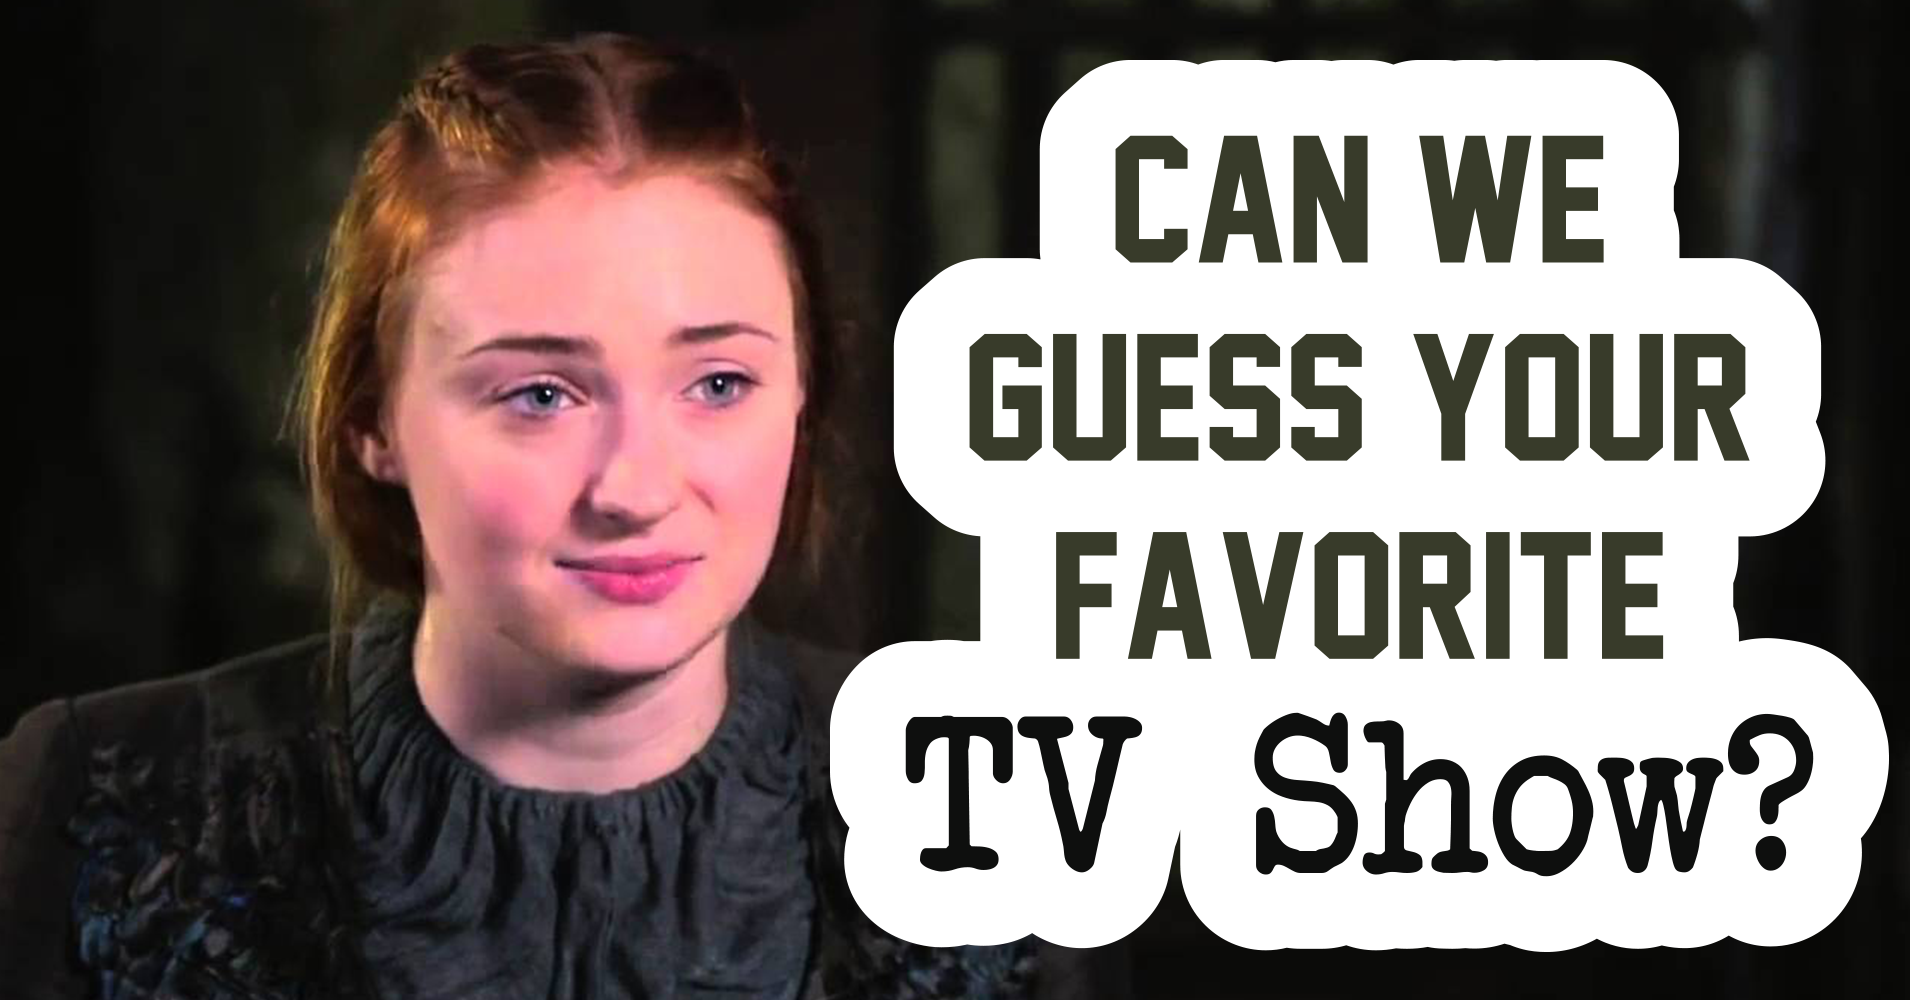 Can we guess your favorite tv show question 1 do you - Your favorite show ...